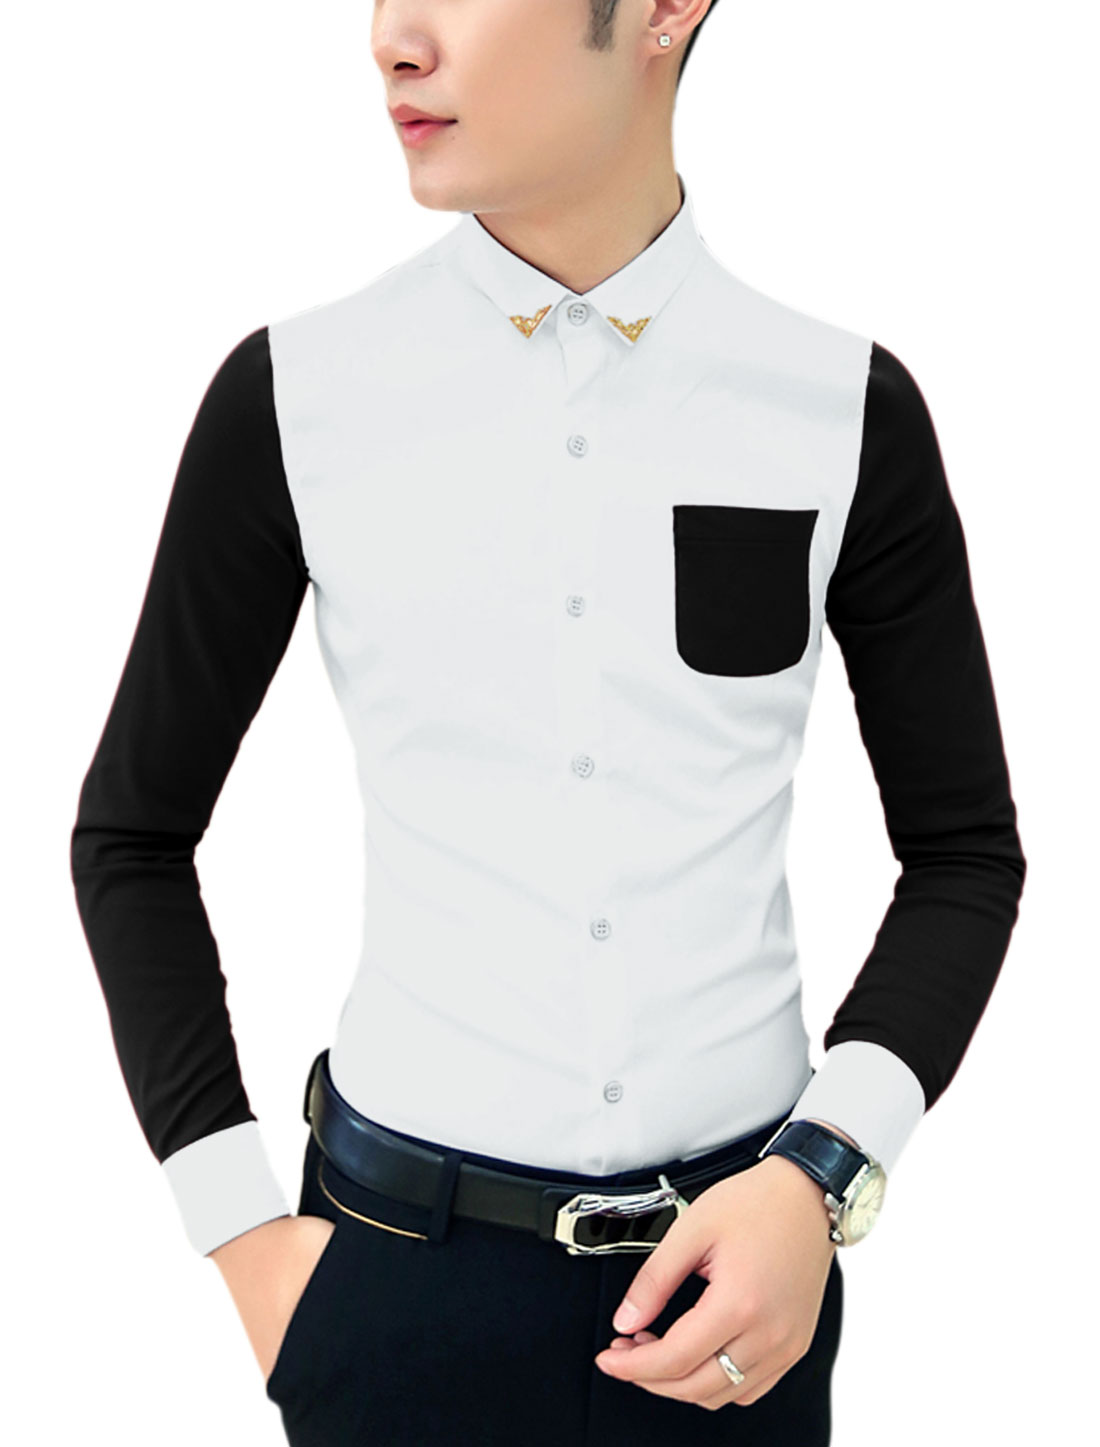 Men Point Collar Panel Design Color Blocked Leisure Shirt Black White M